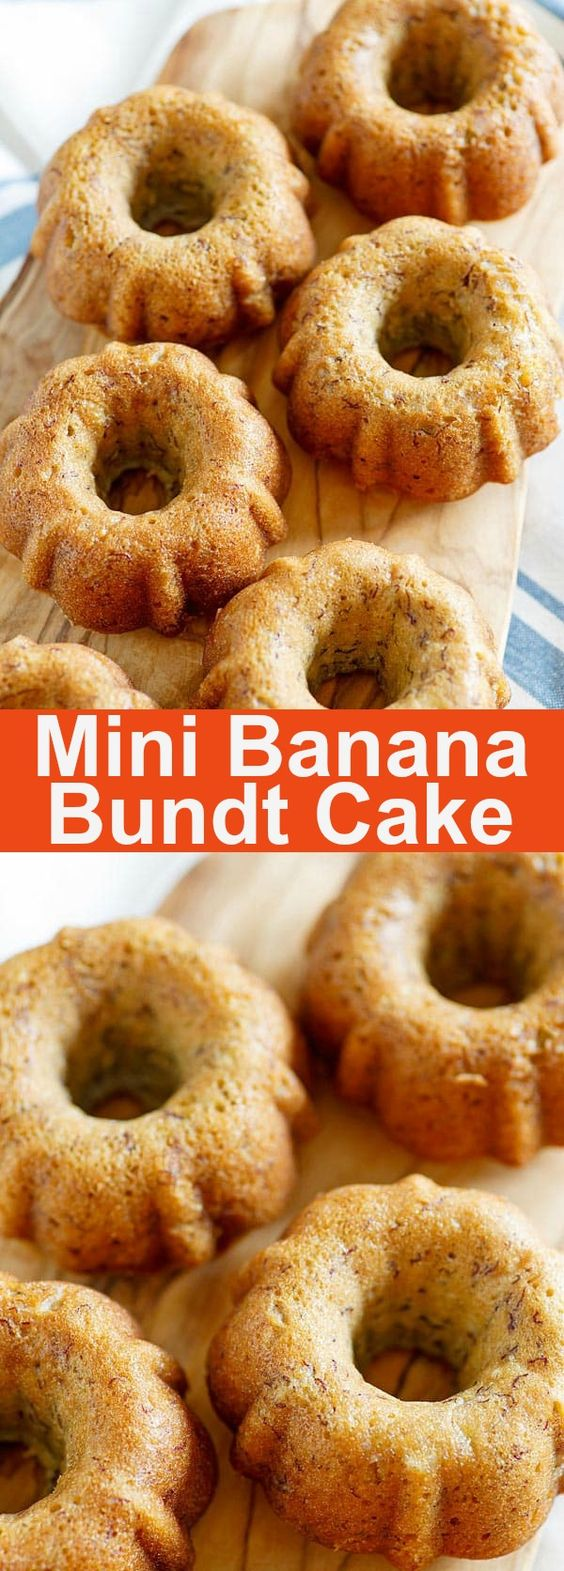 Best Banana Bundt Cake - moist and yummy banana bundt cake, baked in mini bundt pans. Loaded with bananas, this is the best bundt cake ever | rasamalaysia.com